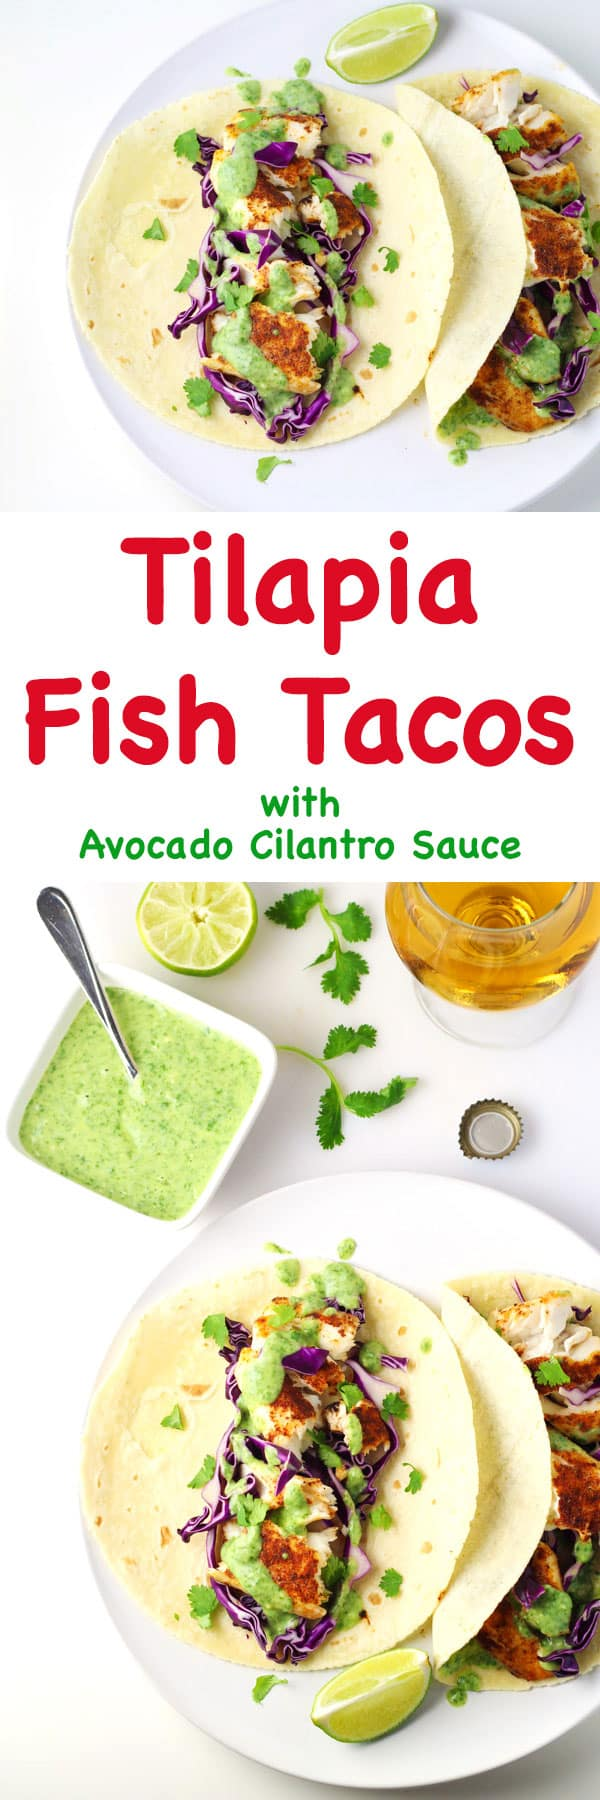 Tilapia Fish Tacos with Avocado Cilantro Sauce (Gluten Free) - This is a crowd favorite, everyone will love these!